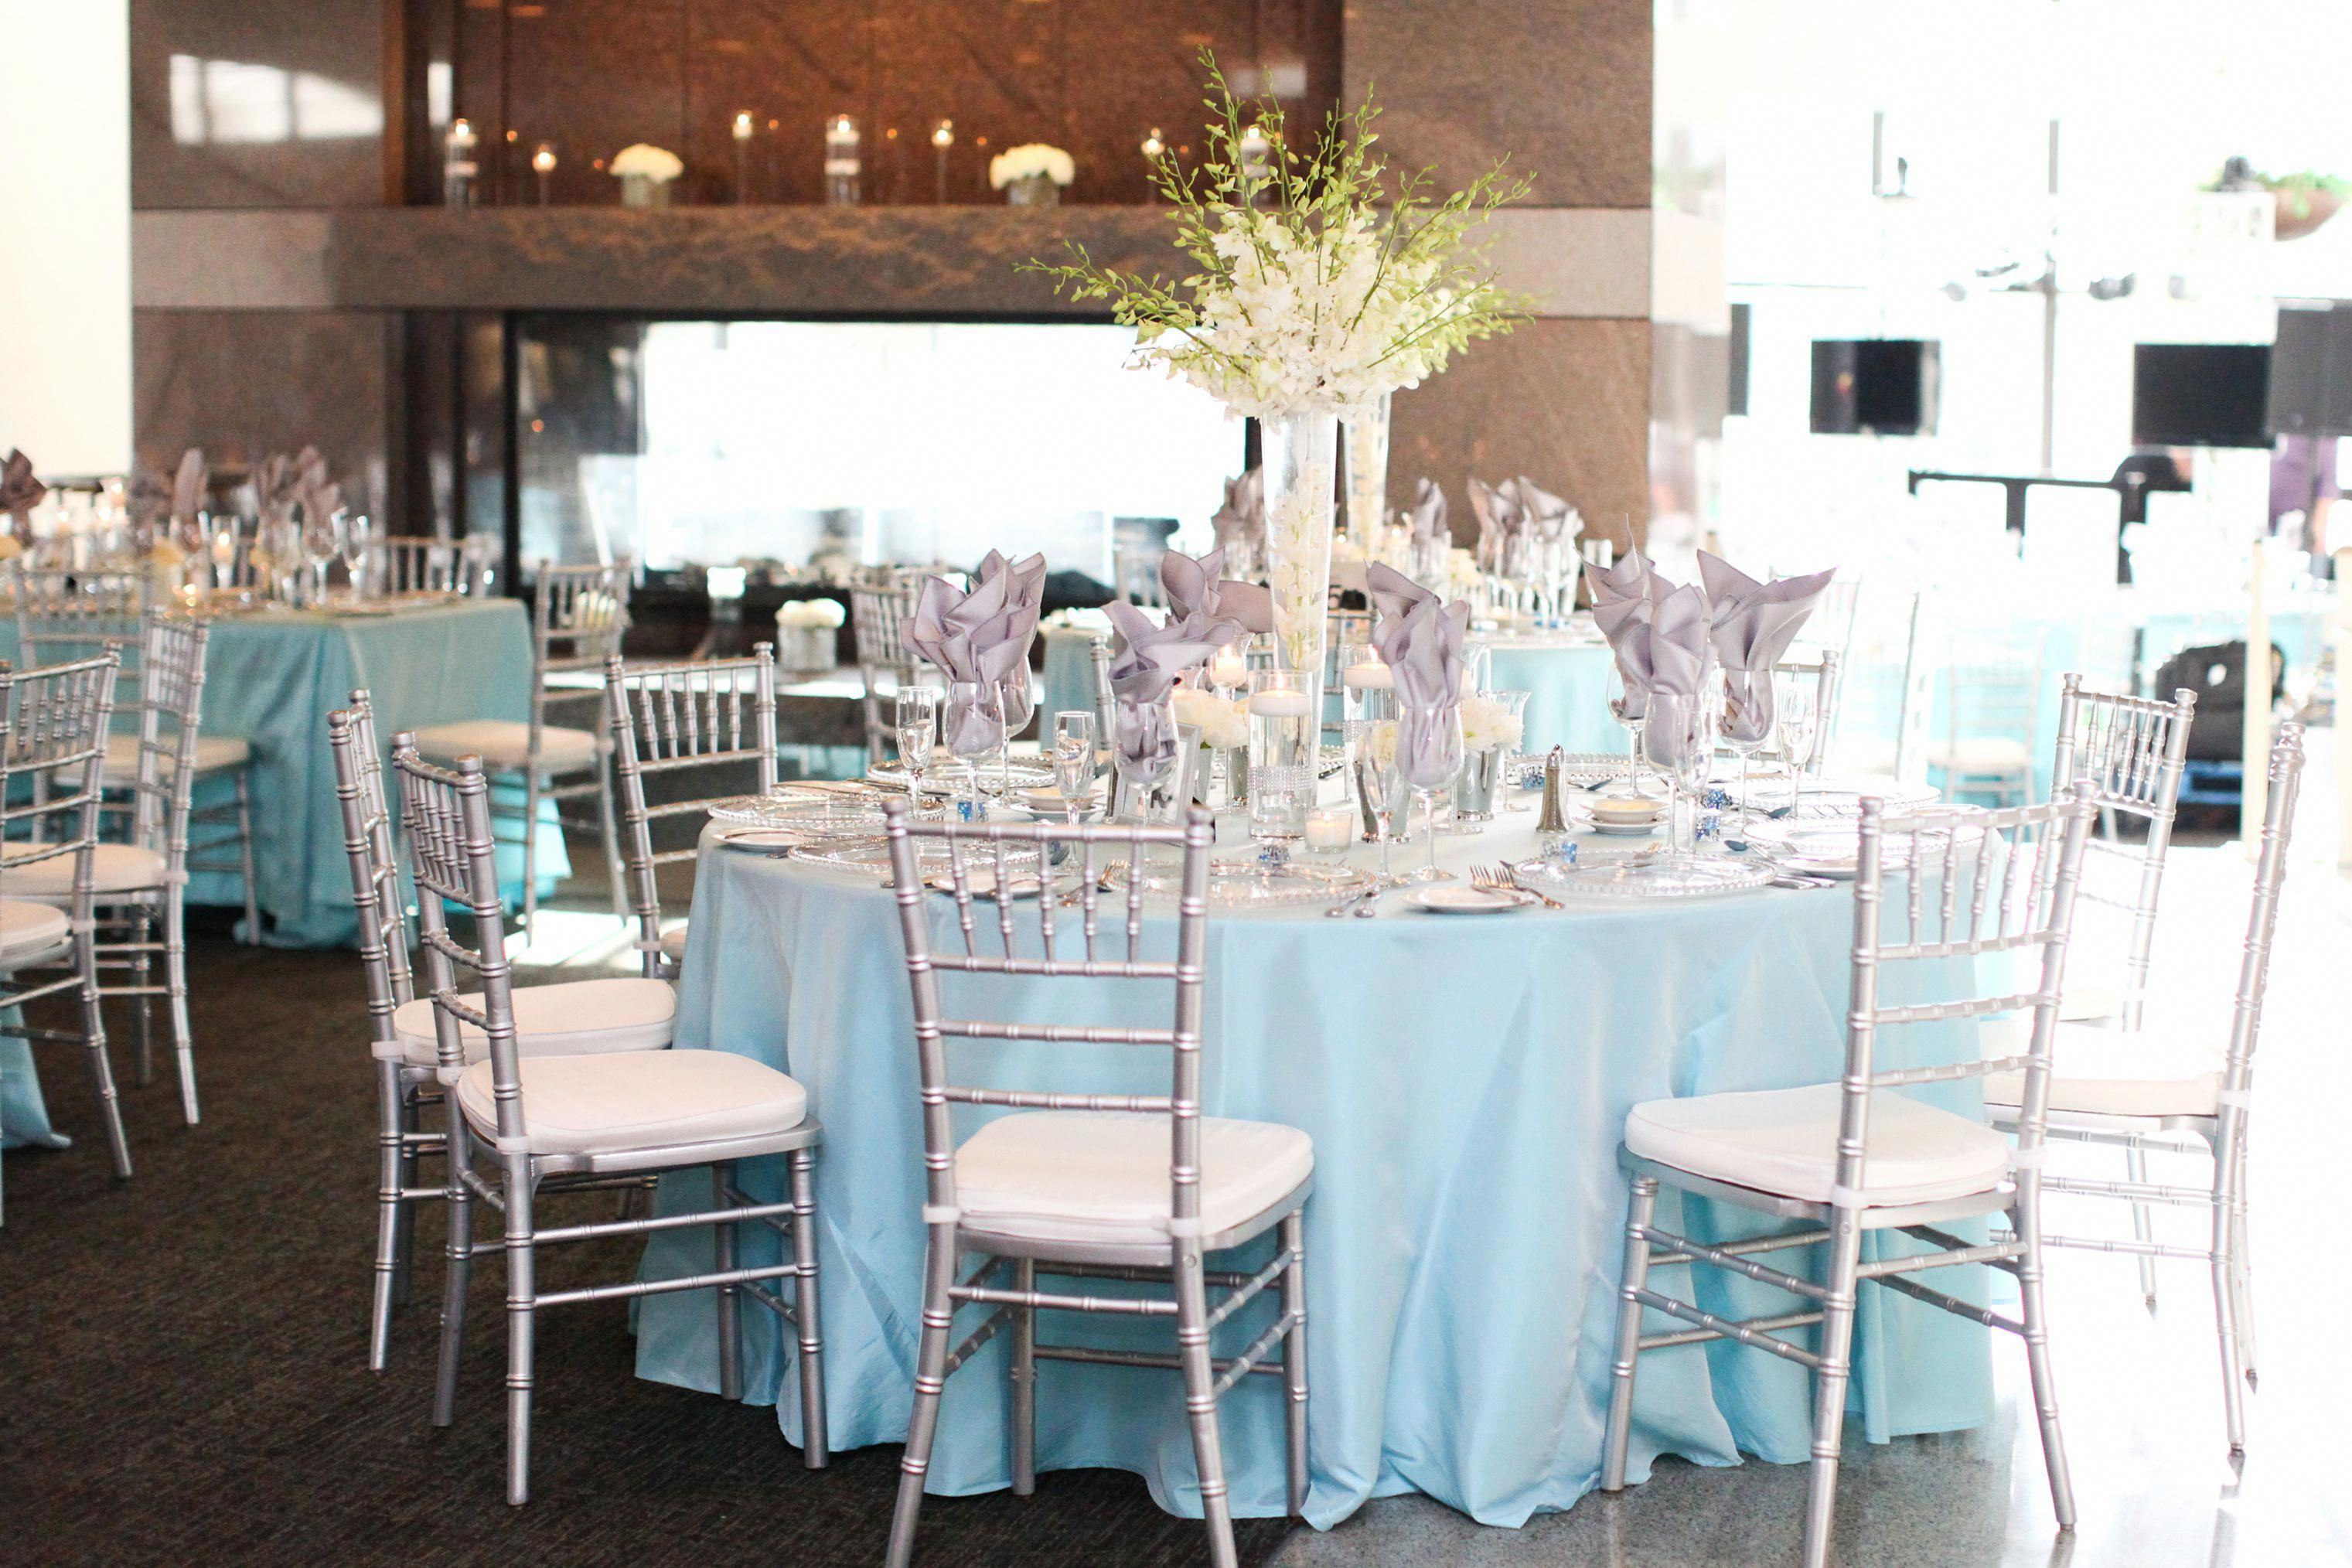 Orchid Centerpiece White Tall Centerpiece Light Blue And Silver Wedding Tiffany Blue Tall Centerpiece O White Wedding Decorations Blue Wedding Centerpieces